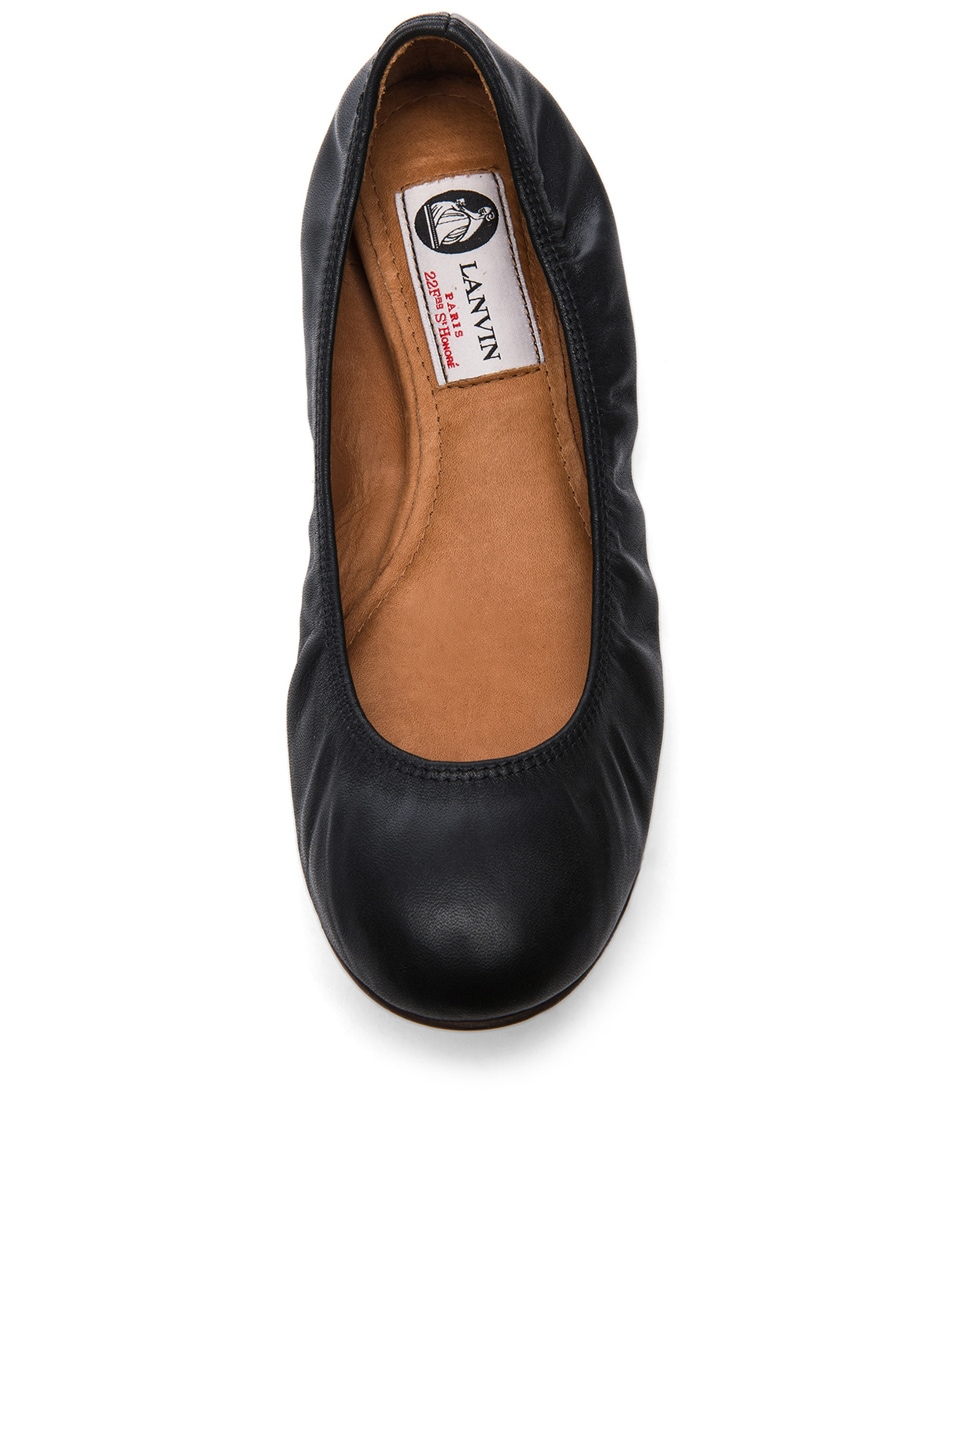 Image 4 of Lanvin Lambskin Leather Ballerina Flats in Noir